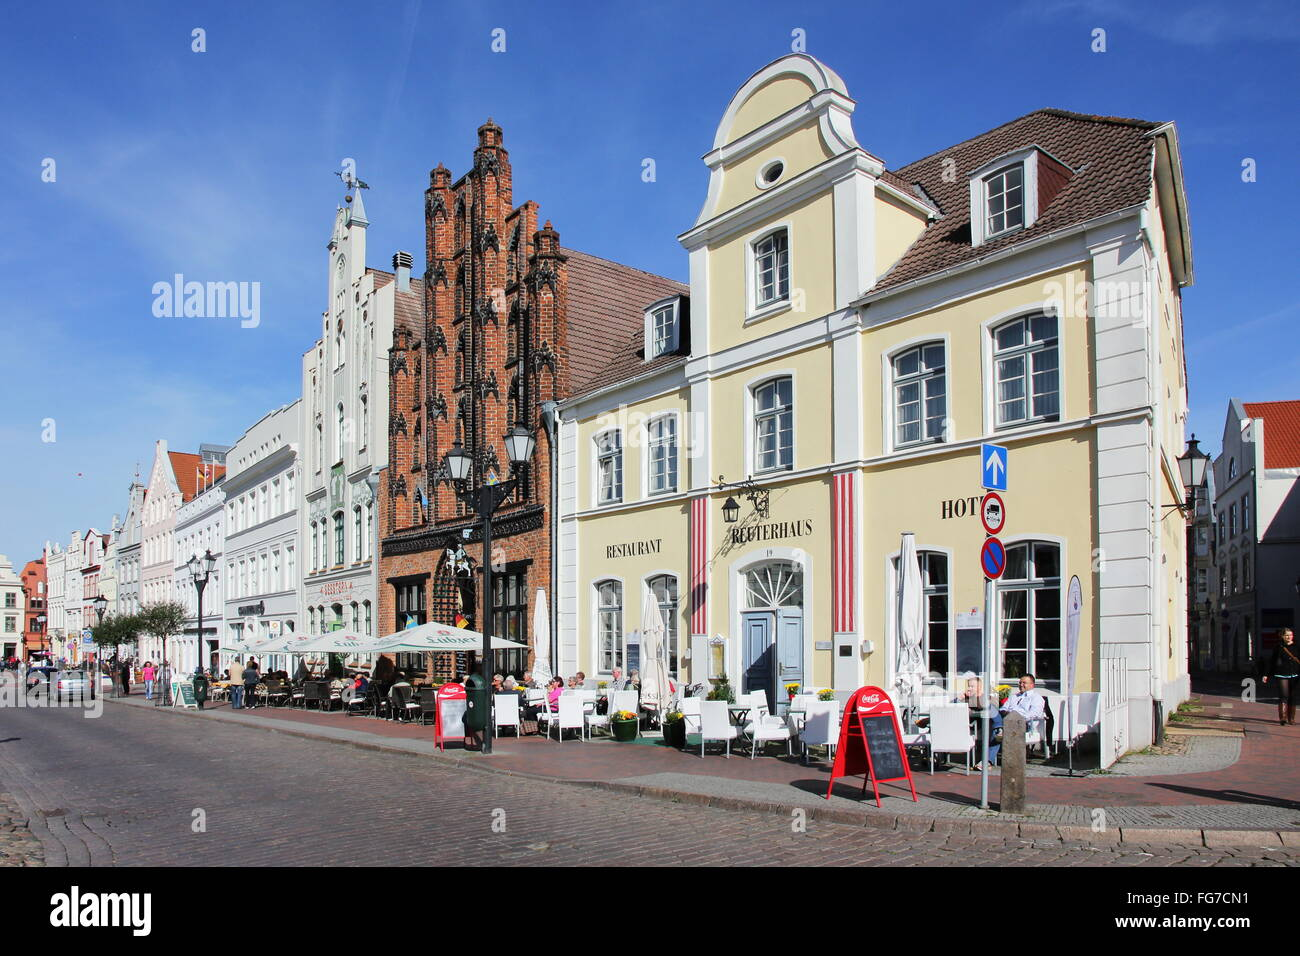 geography / travel, Germany, Mecklenburg-West Pomerania, Wismar, Am Markt, house fronts with 'Alter Schwede' - Stock Image